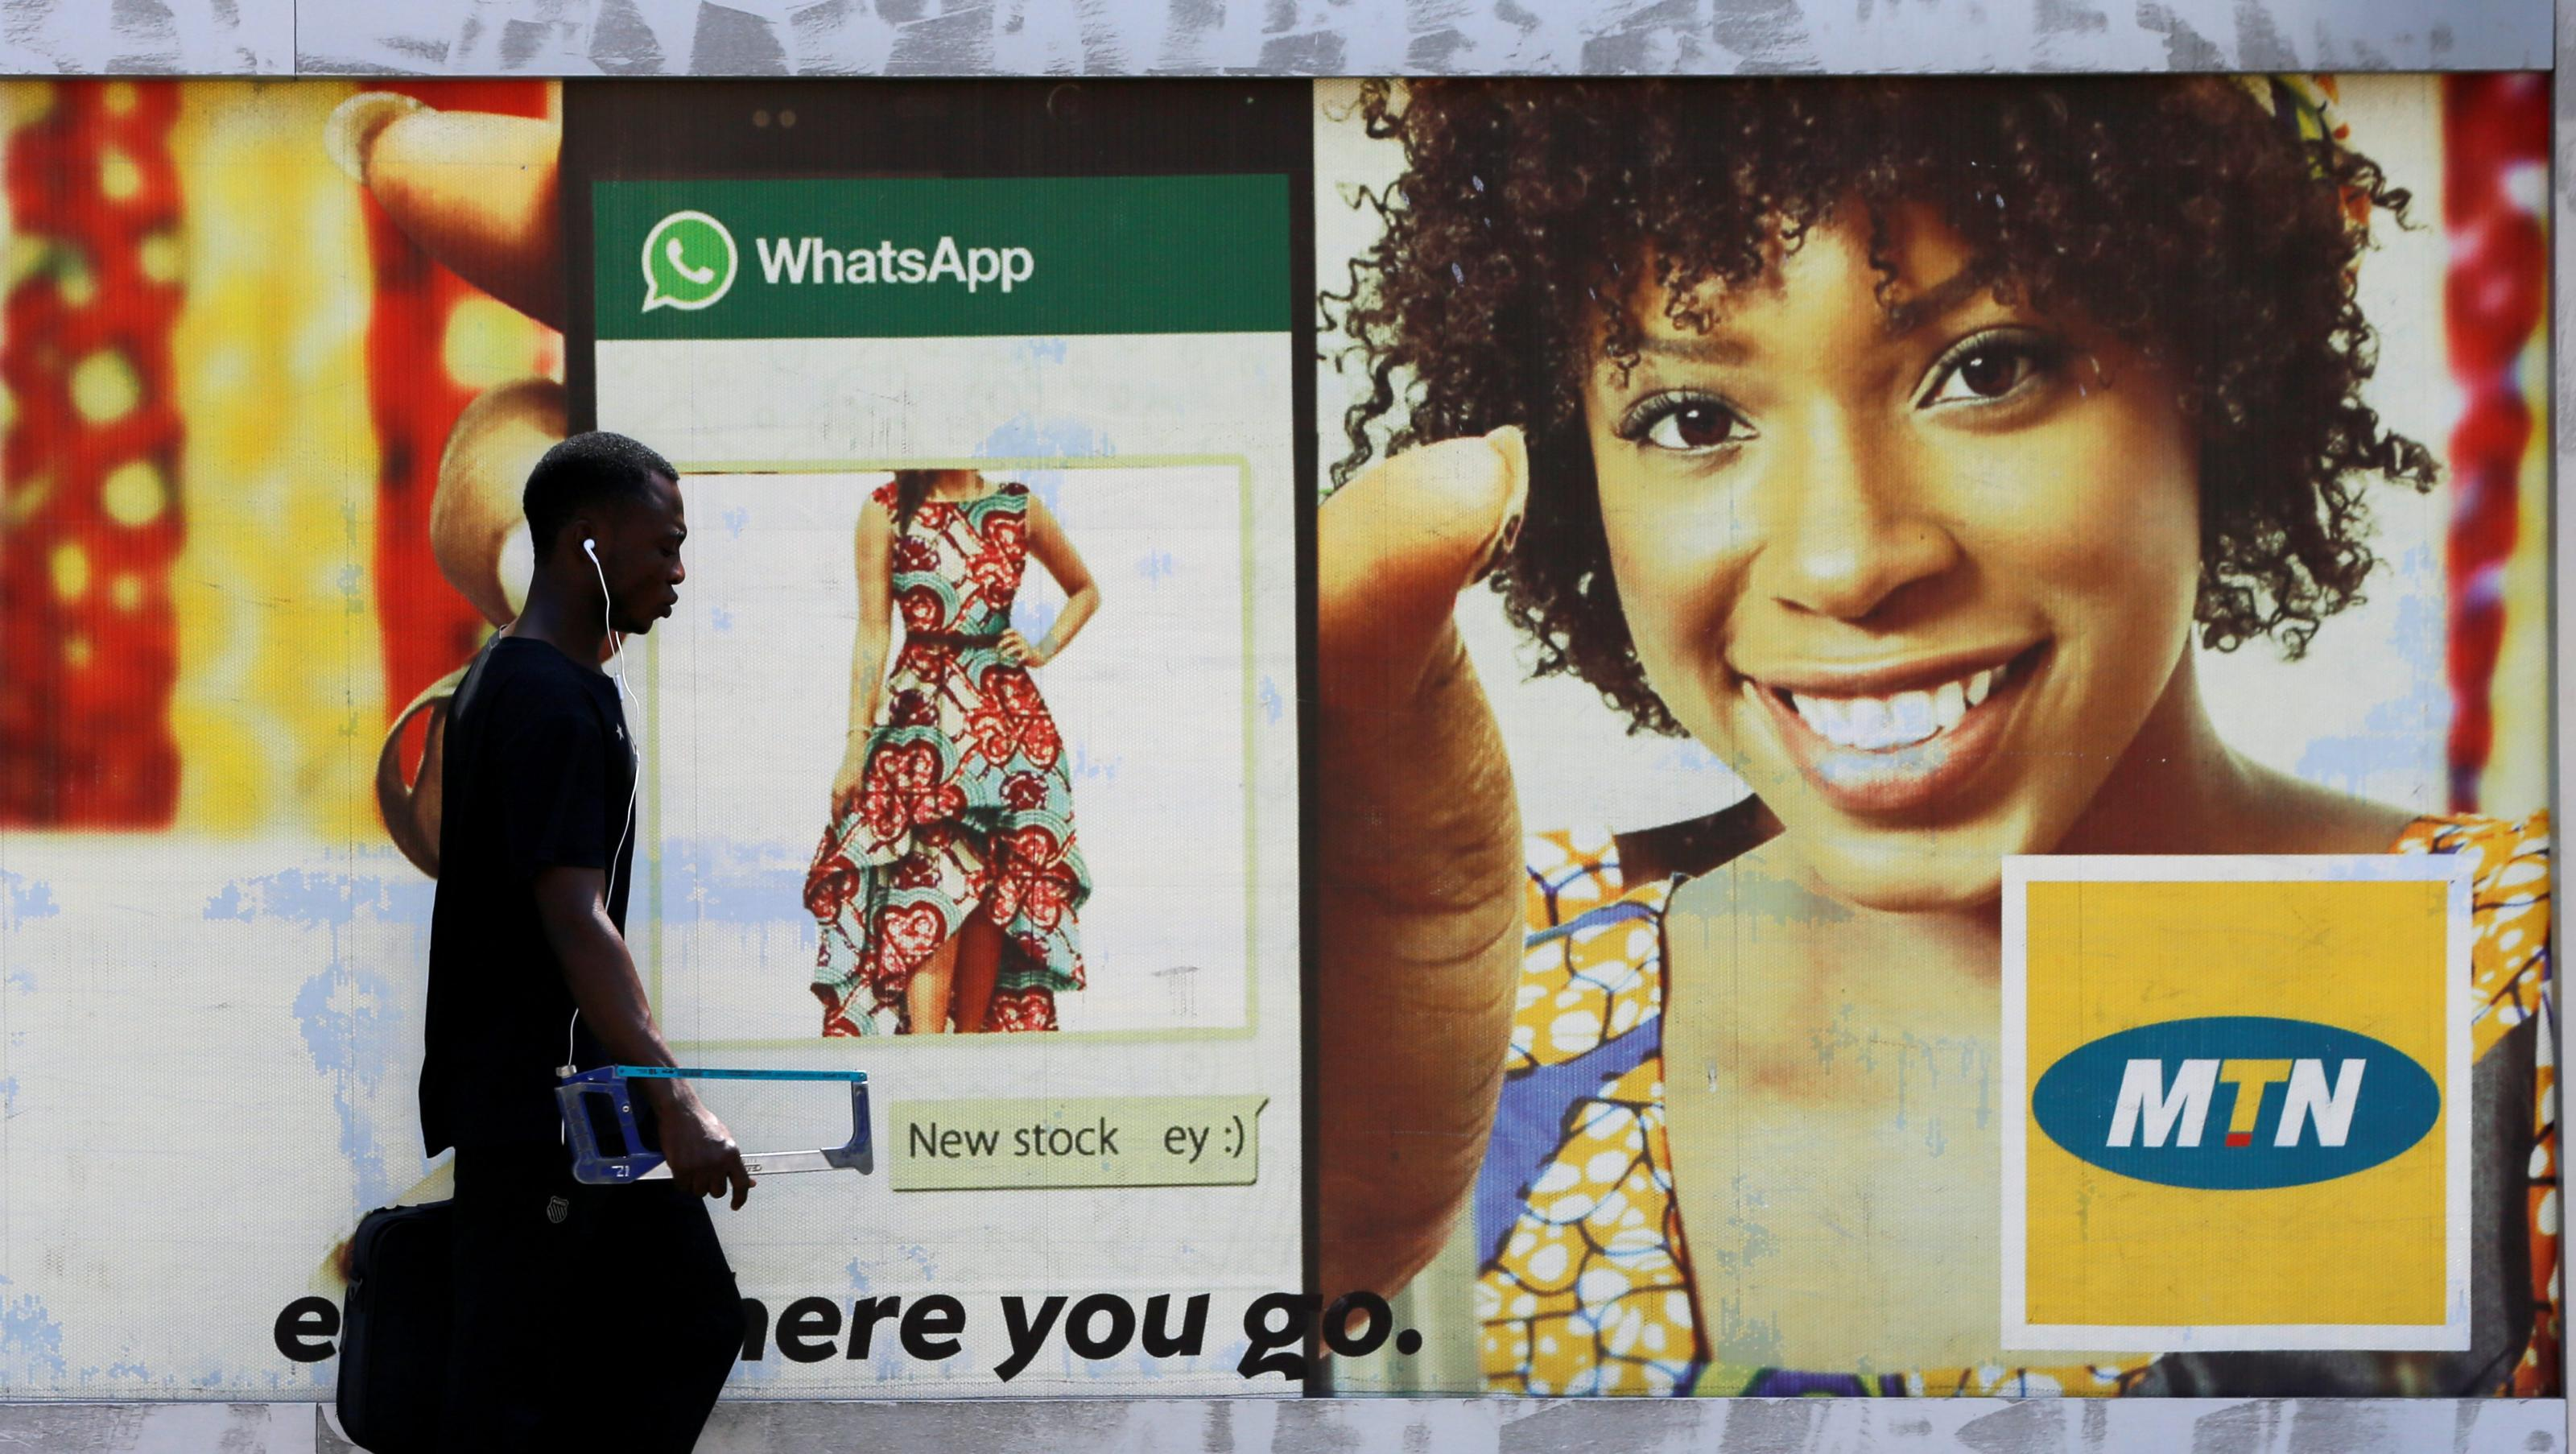 MTN fails on user privacy, digital rights in South Africa Nigeria